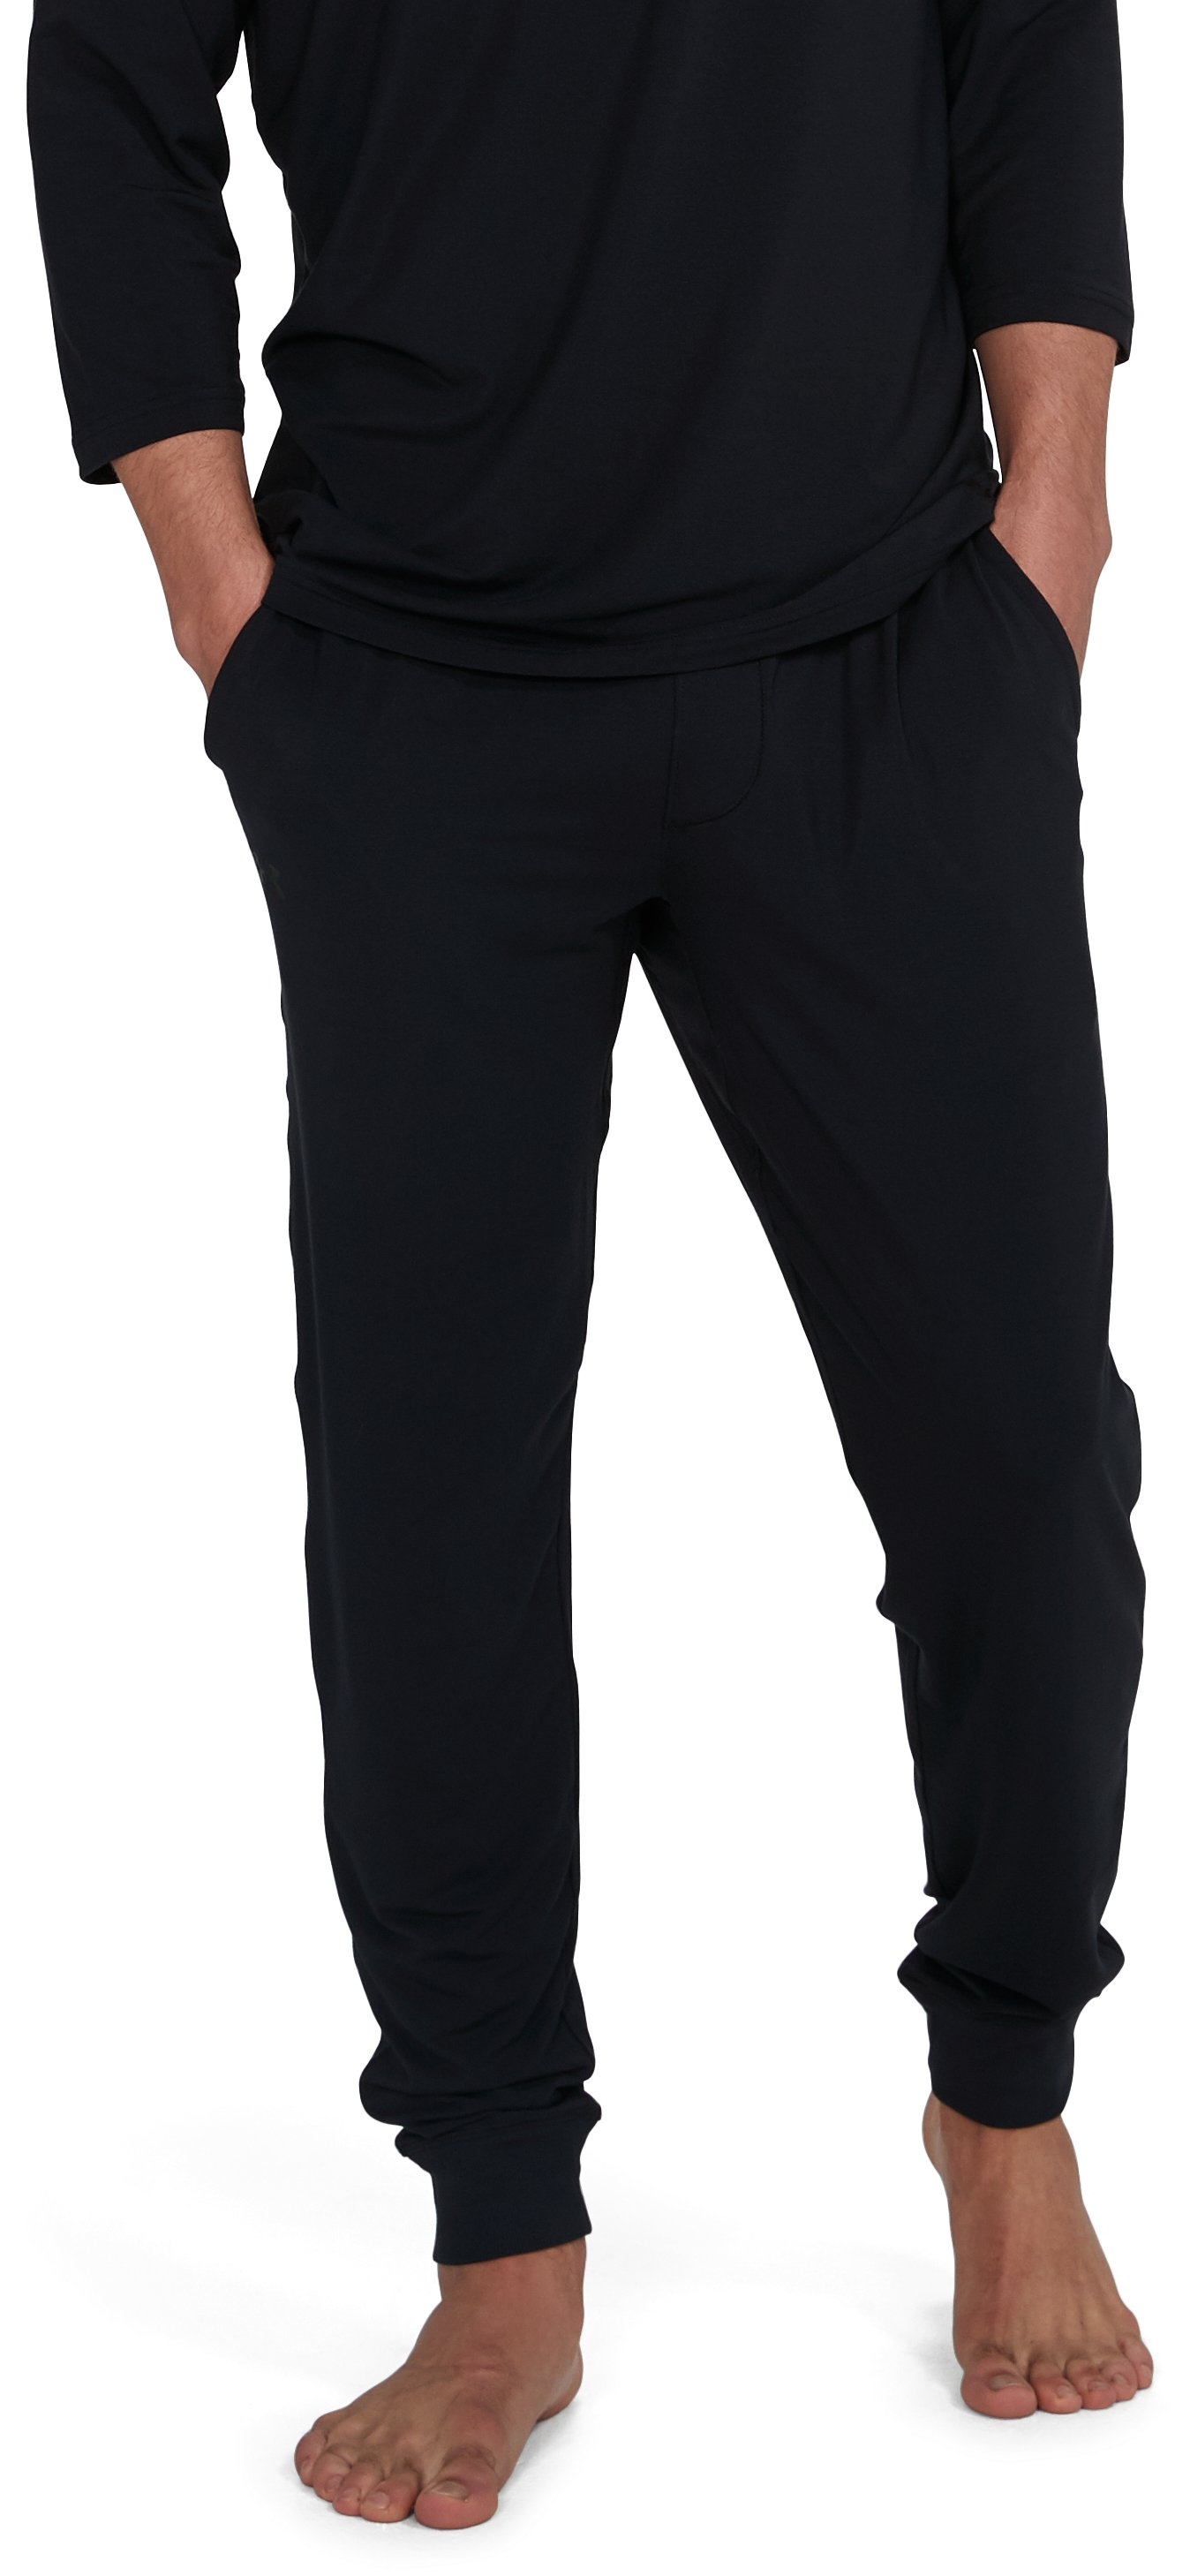 Men's Athlete Recovery Elite Sleepwear Pants, Black , undefined